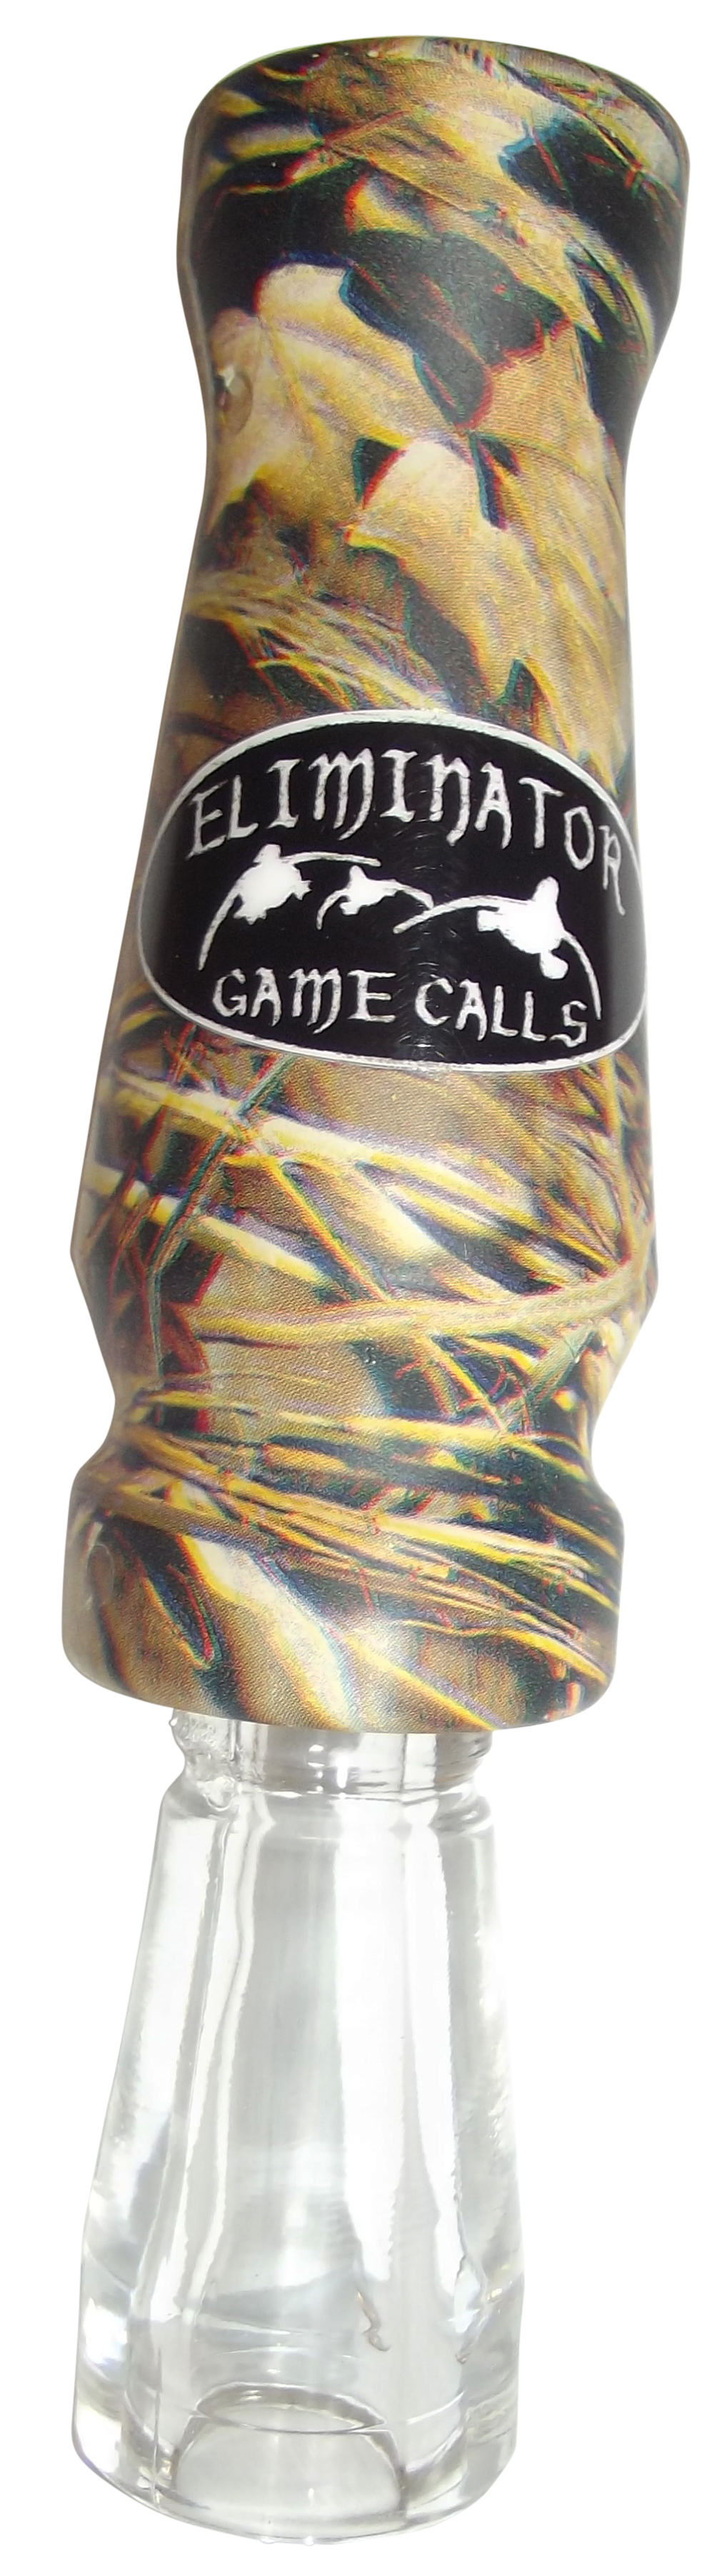 Eliminator Calls Green Head Assassin Double Reed Duck Call Camo